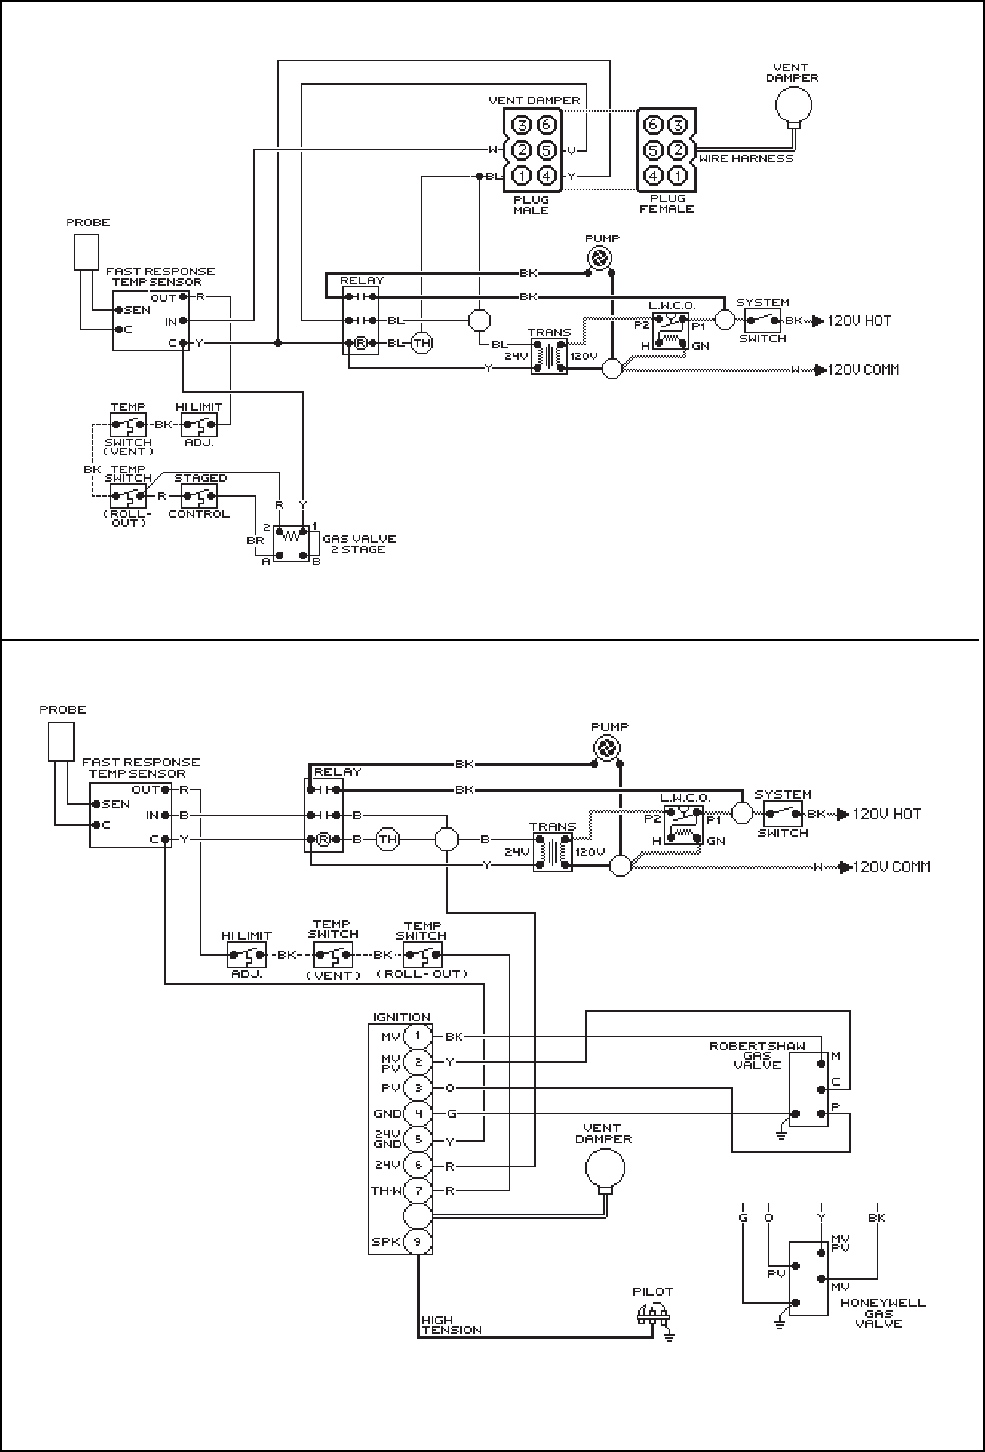 87838a36 6043 4f6d b9f2 da32ff145506 bg16 page 22 of raypak boiler 0180b user guide manualsonline com raypak 2100 wiring diagram at gsmx.co